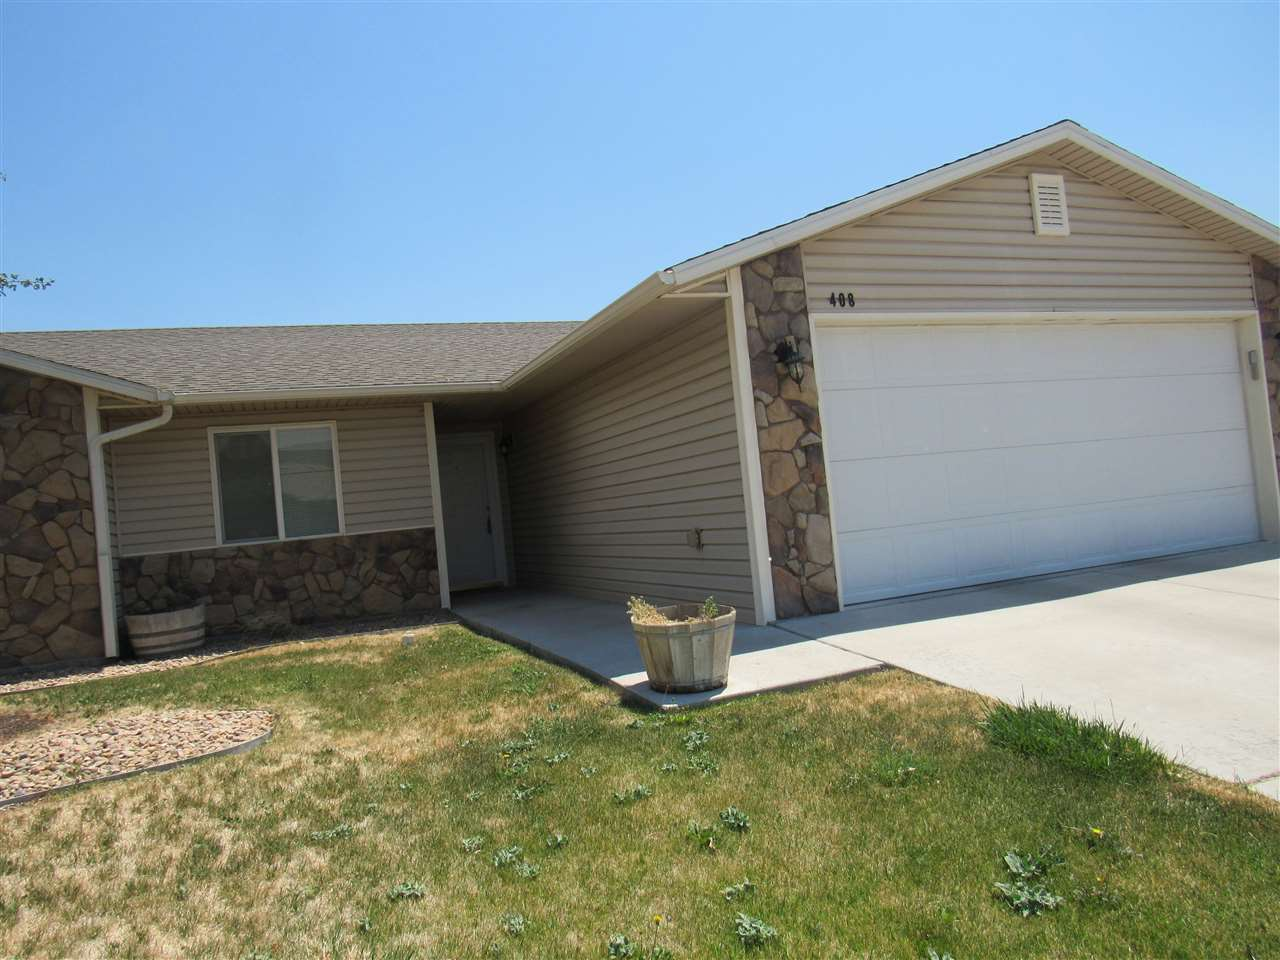 408 29 1/2 Road, Grand Junction, CO 81504